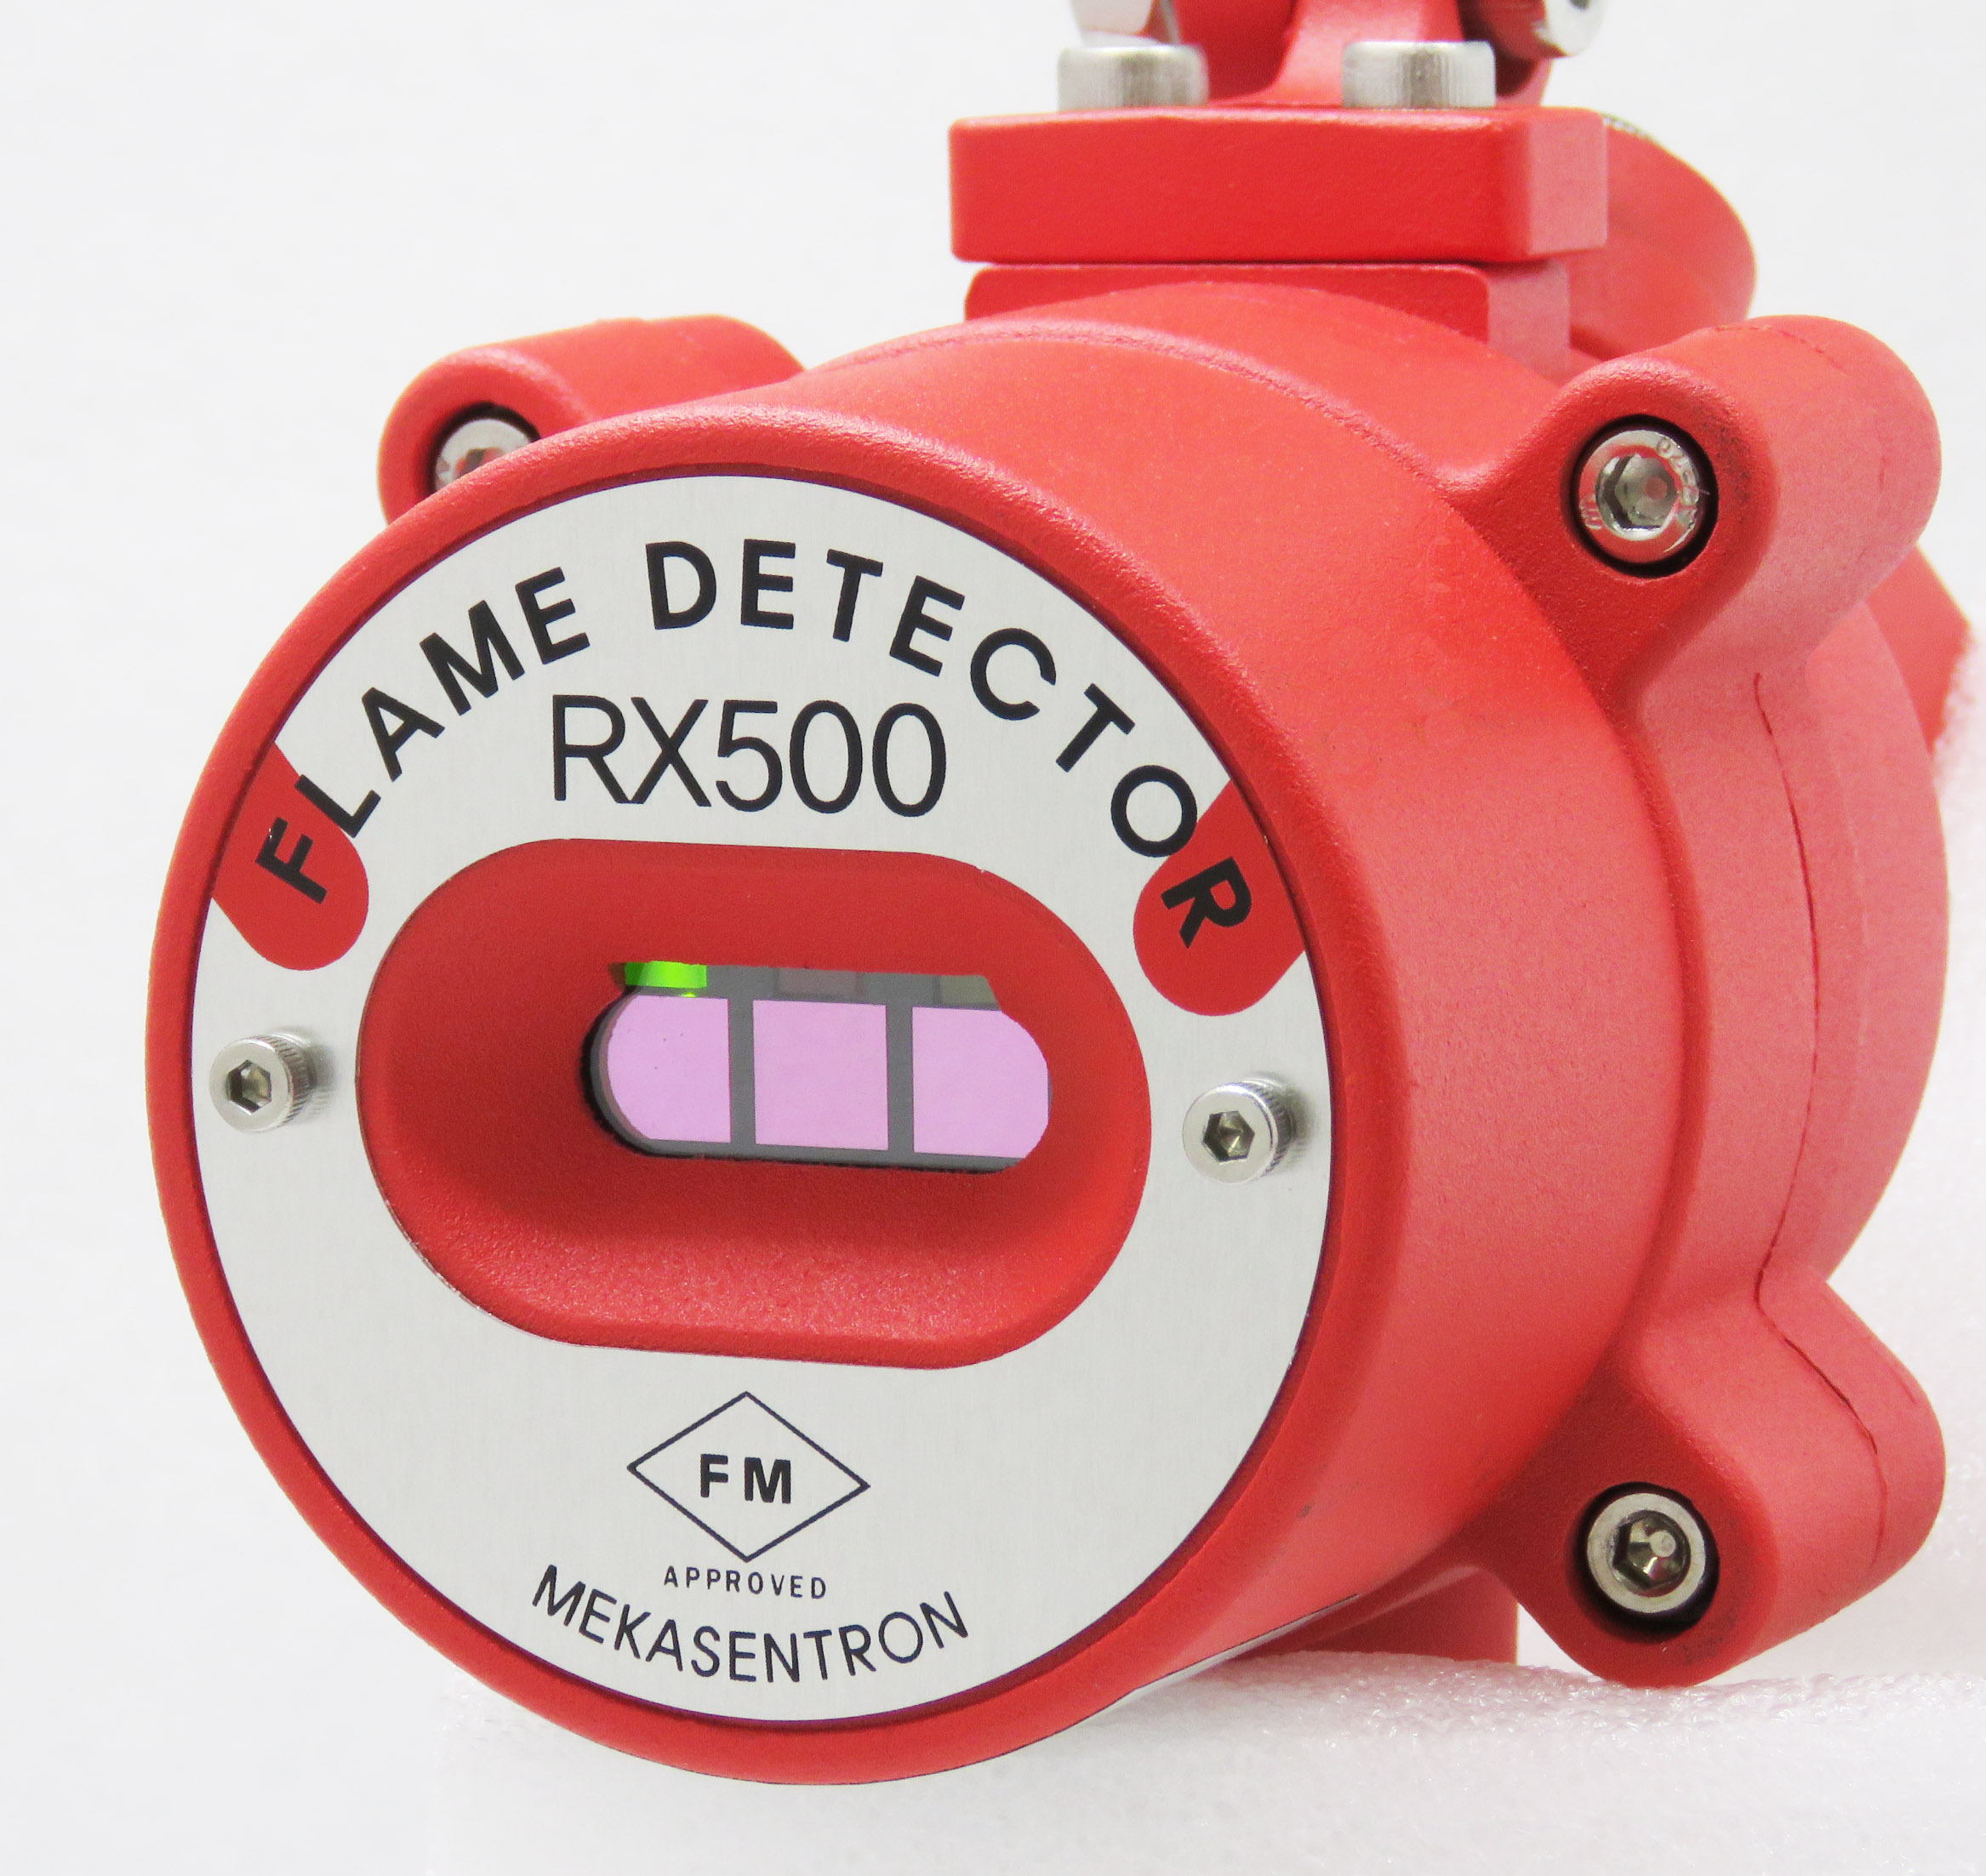 Flame detector, RX500